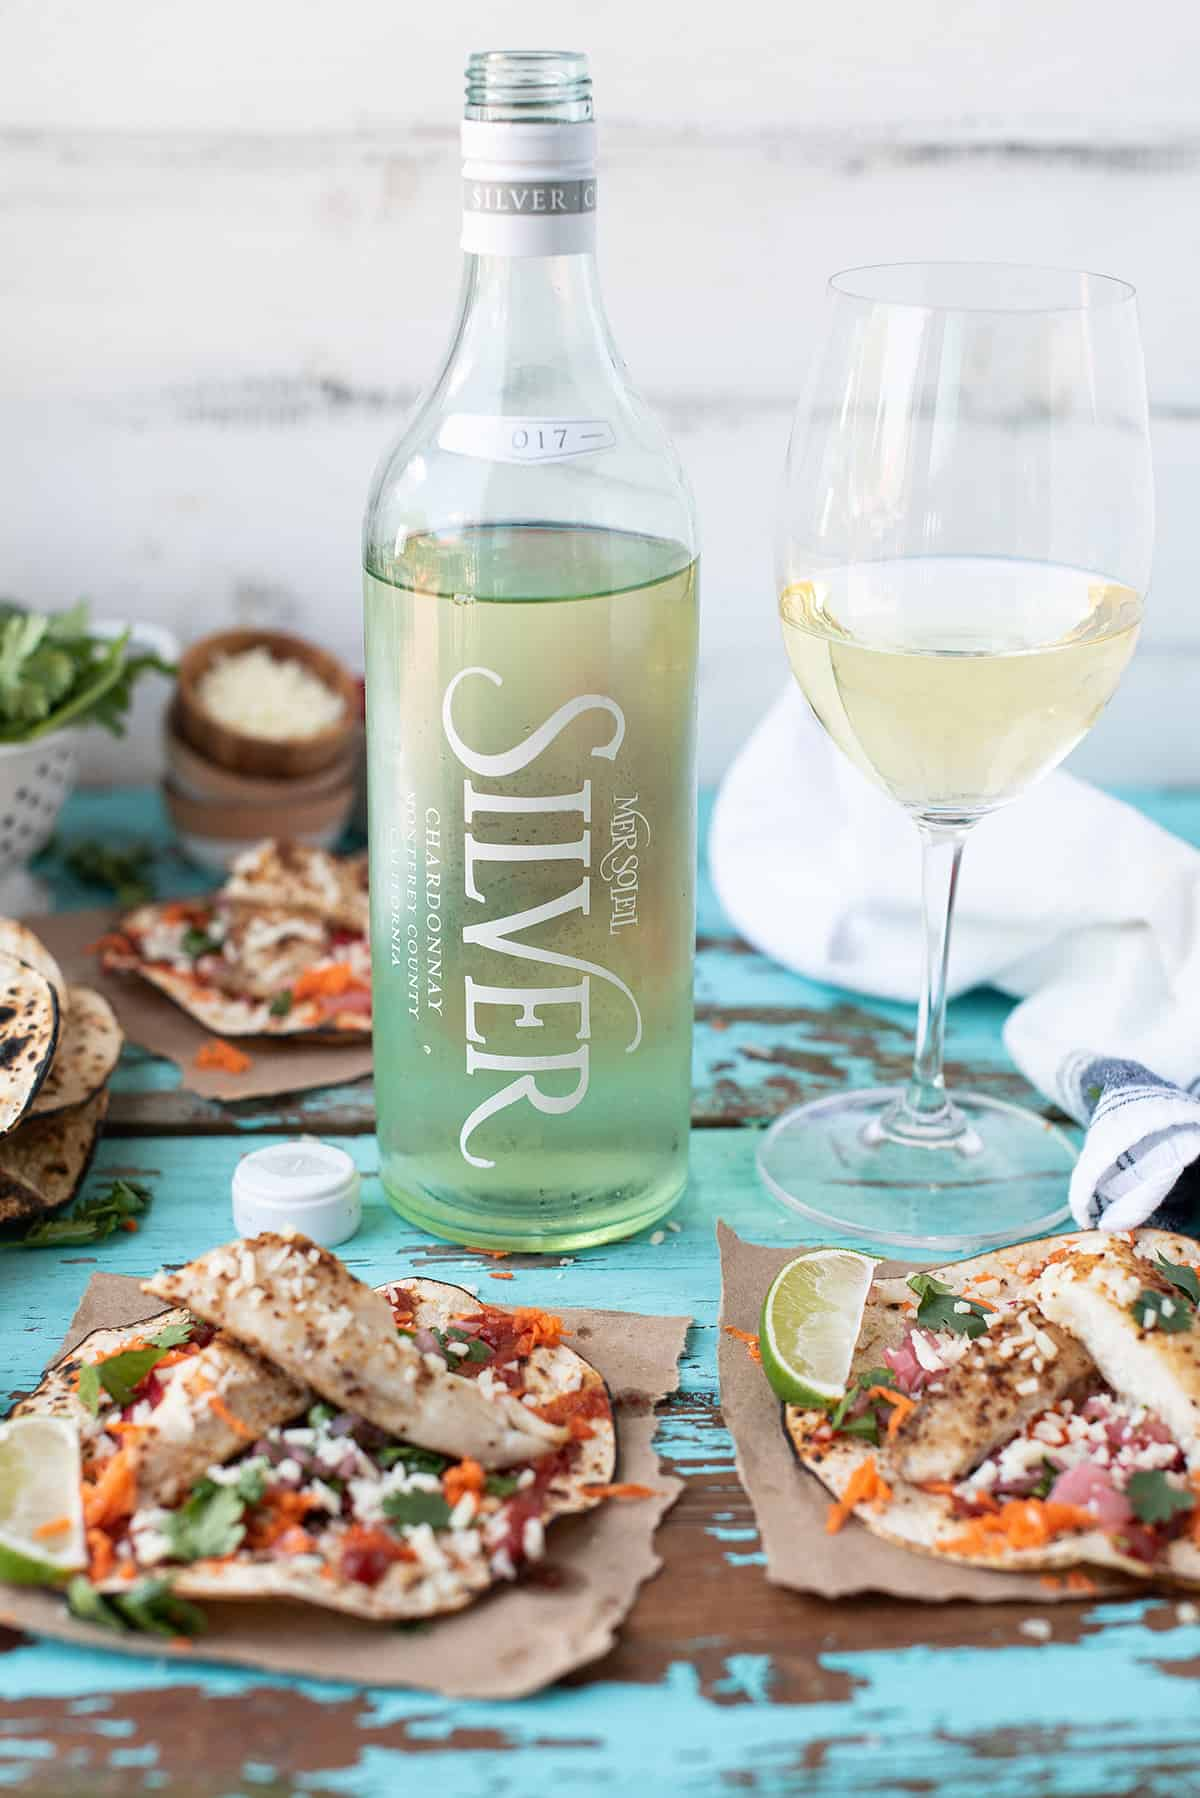 Mer Soleil SILVER bottle, wine glass with fish tostadas